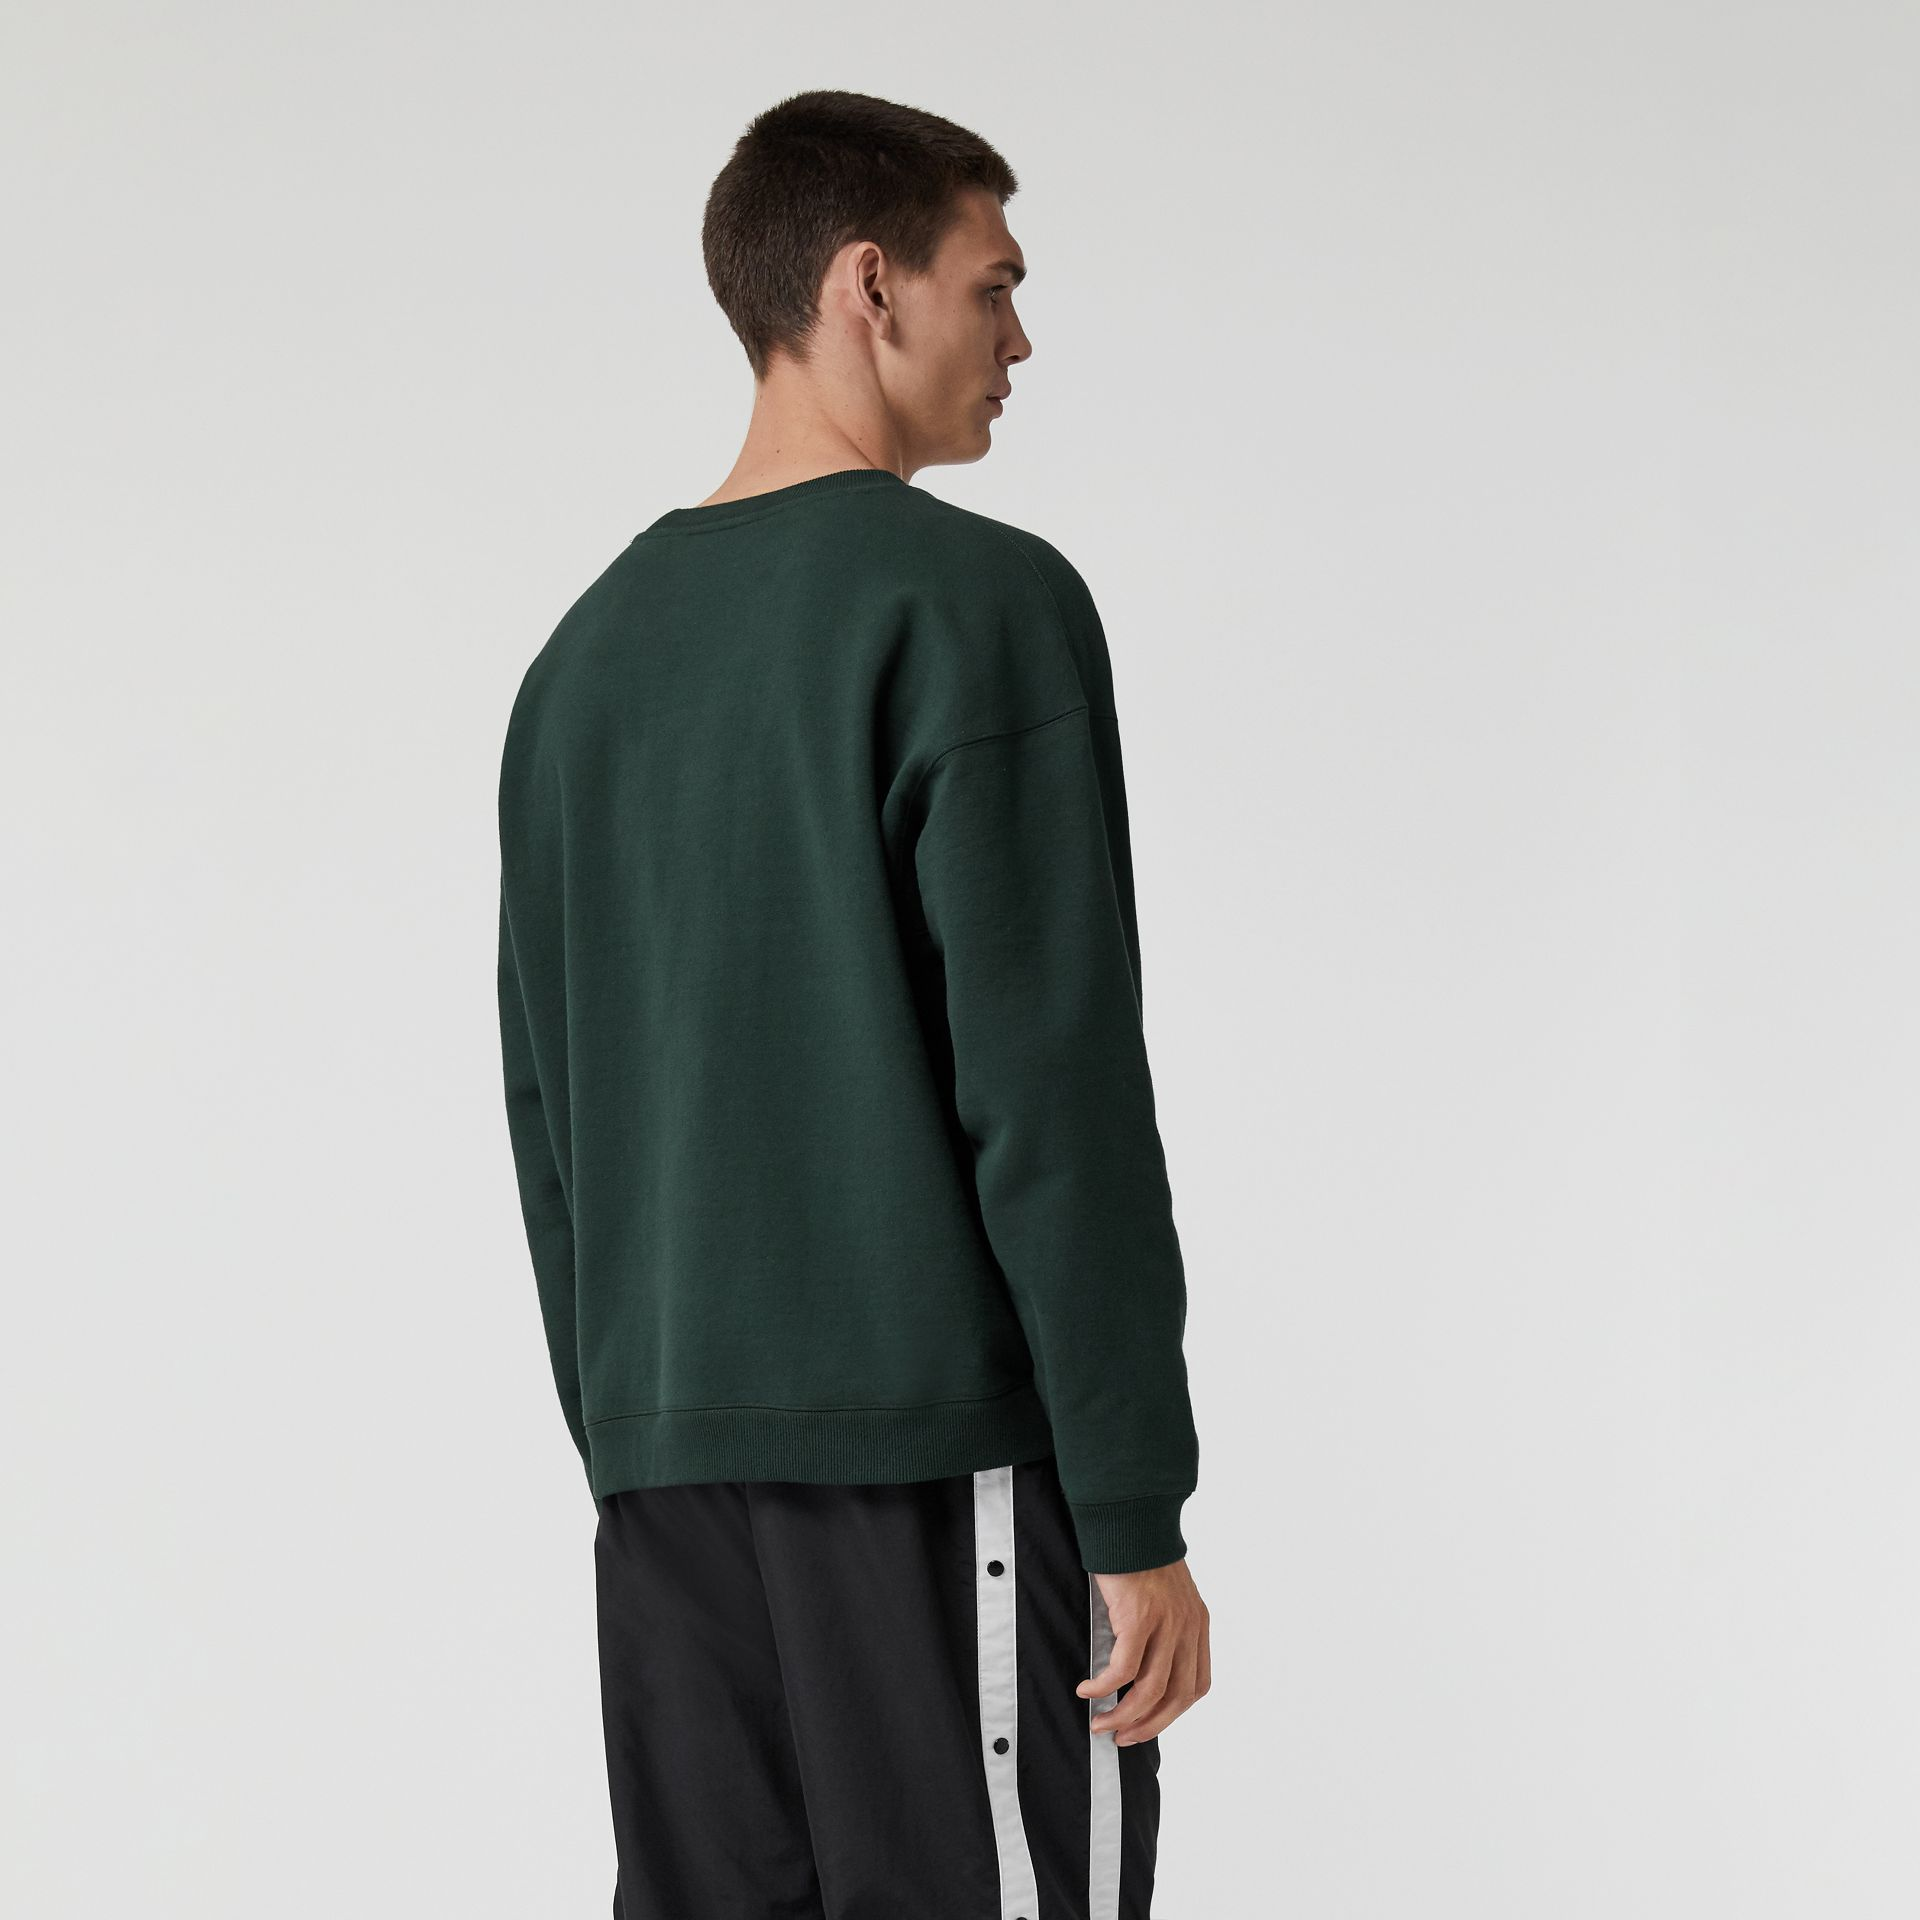 Embroidered Logo Jersey Sweatshirt in Forest Green - Men | Burberry Australia - gallery image 2